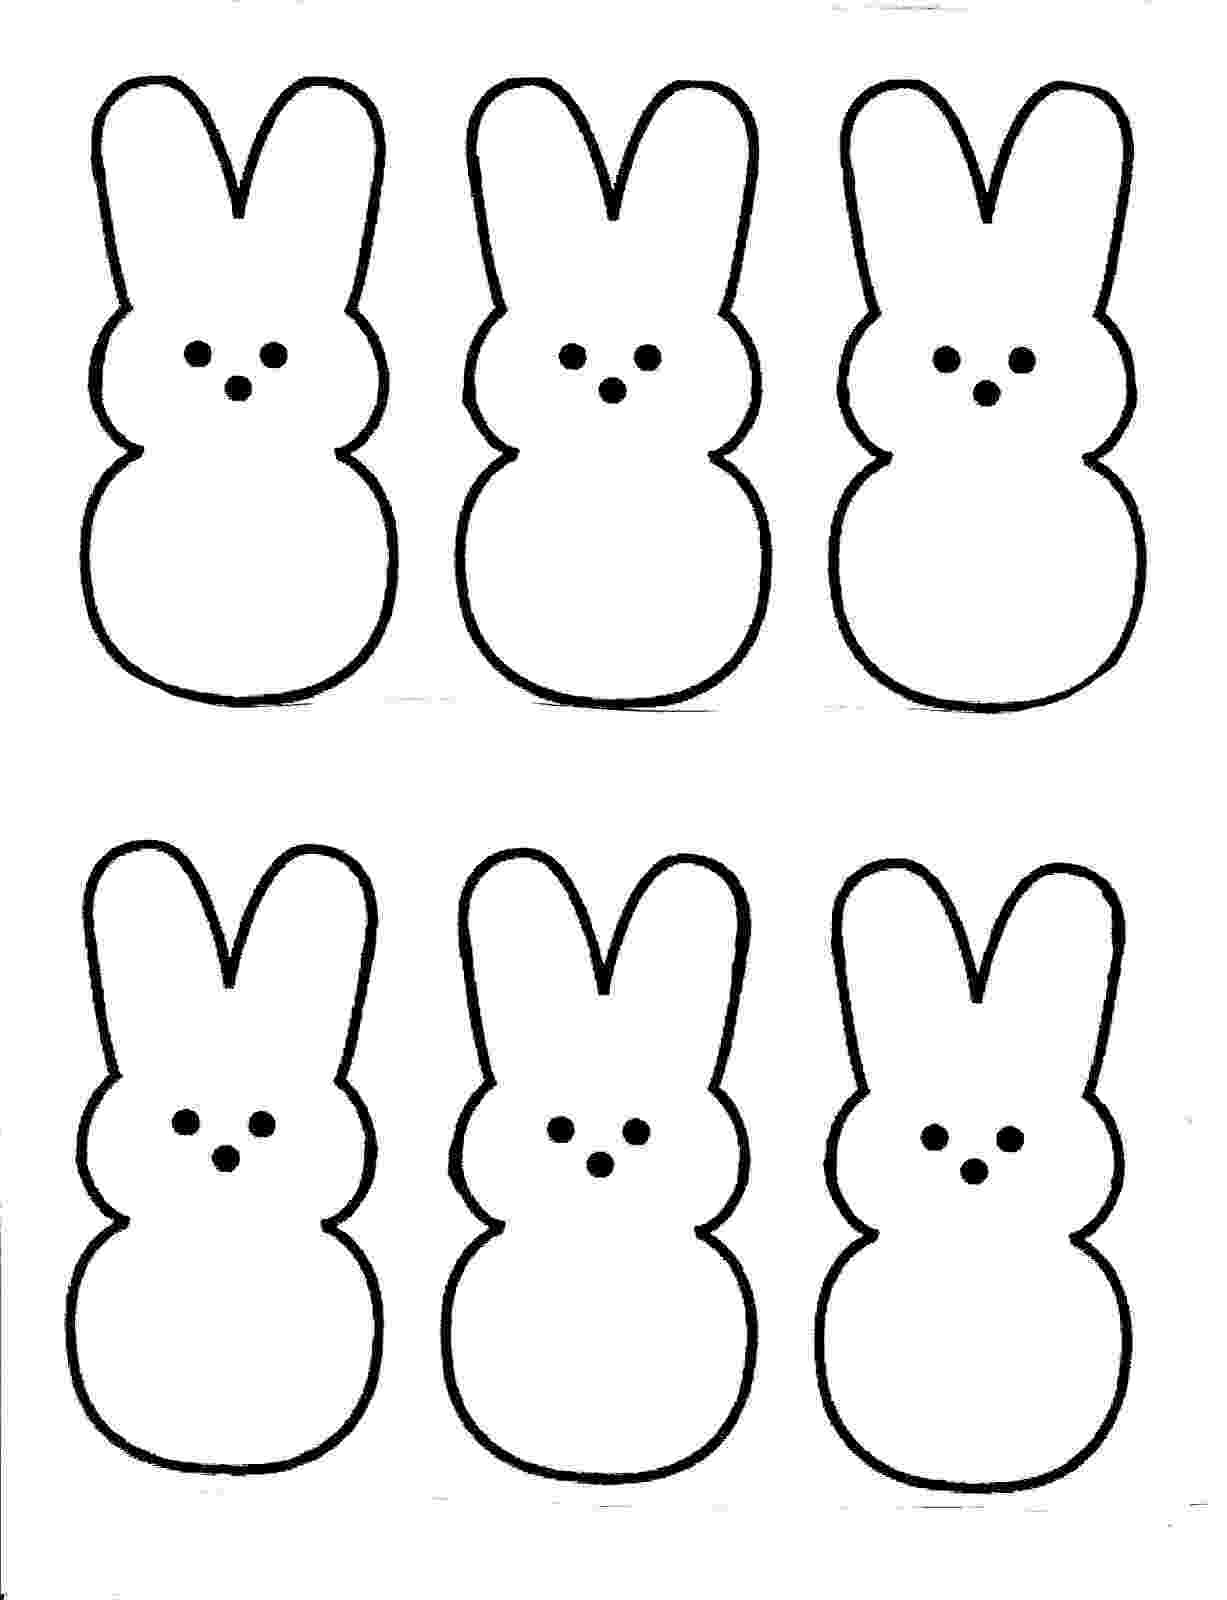 printable easter pictures easter bunny hidden picture activity page woo jr kids easter printable pictures